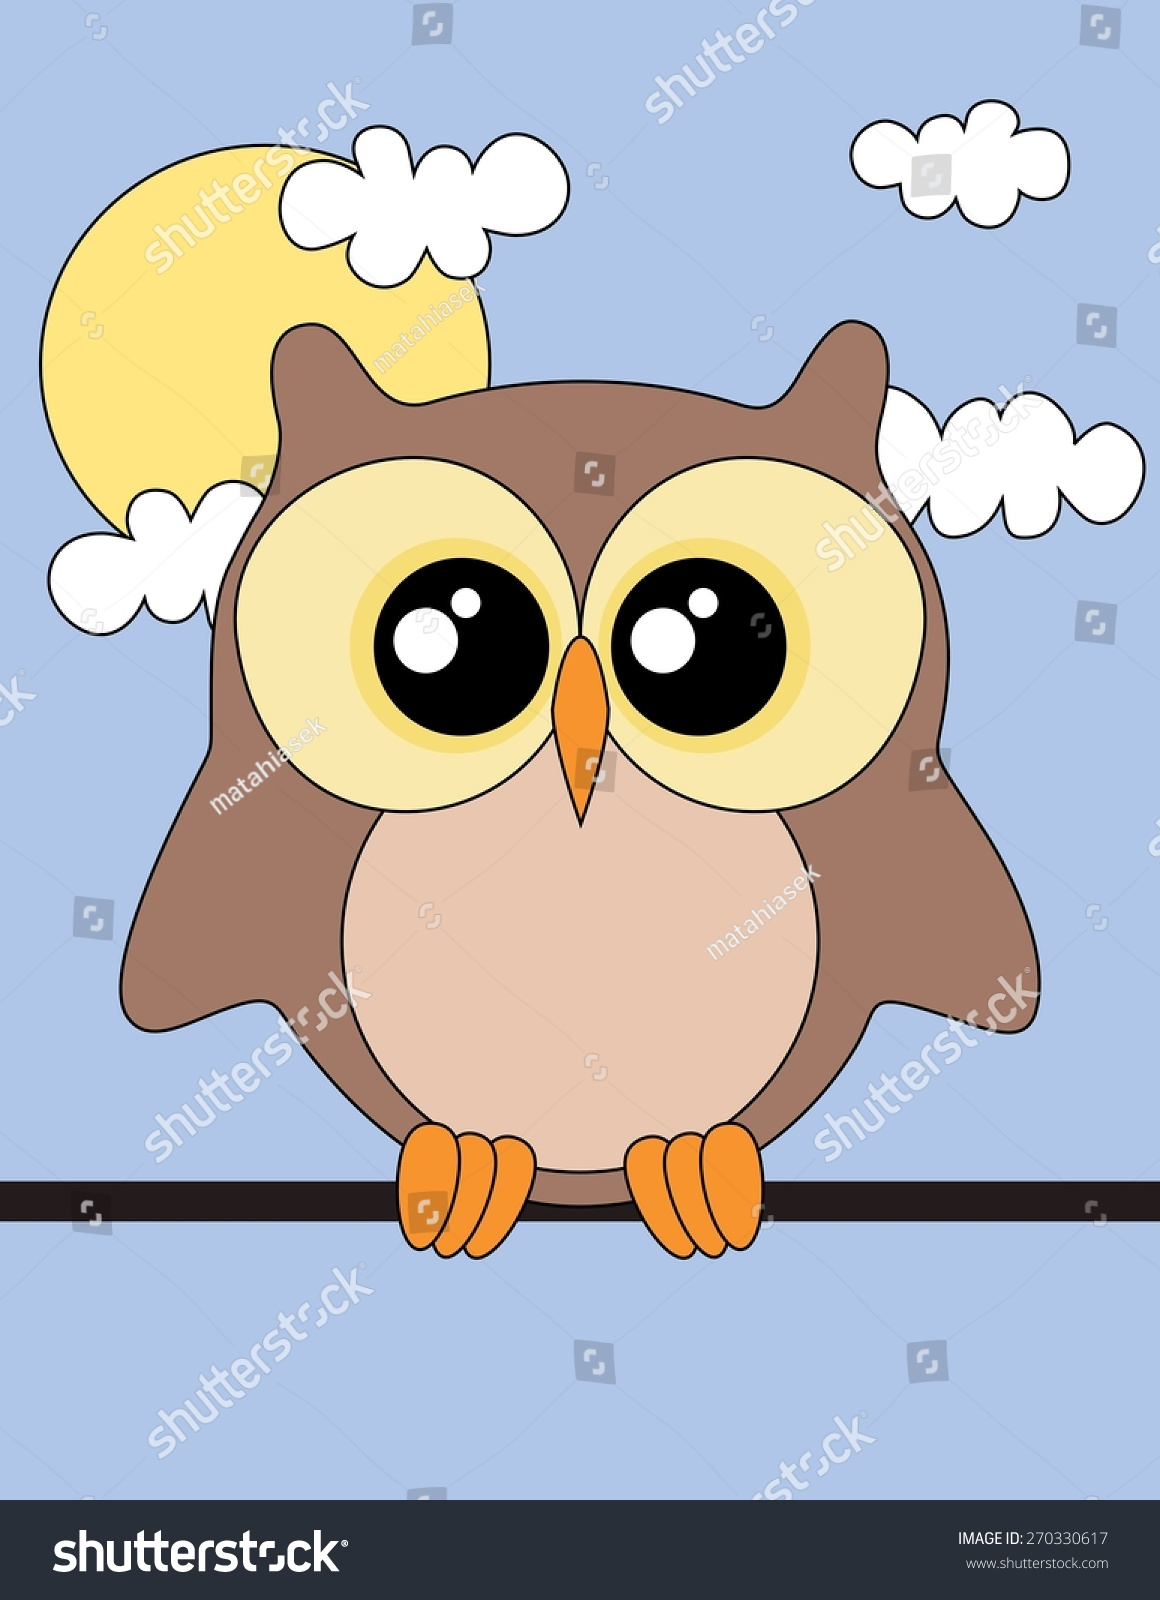 Cute Owl Sun Clouds Owl Wallpaper Stock Illustration 270330617